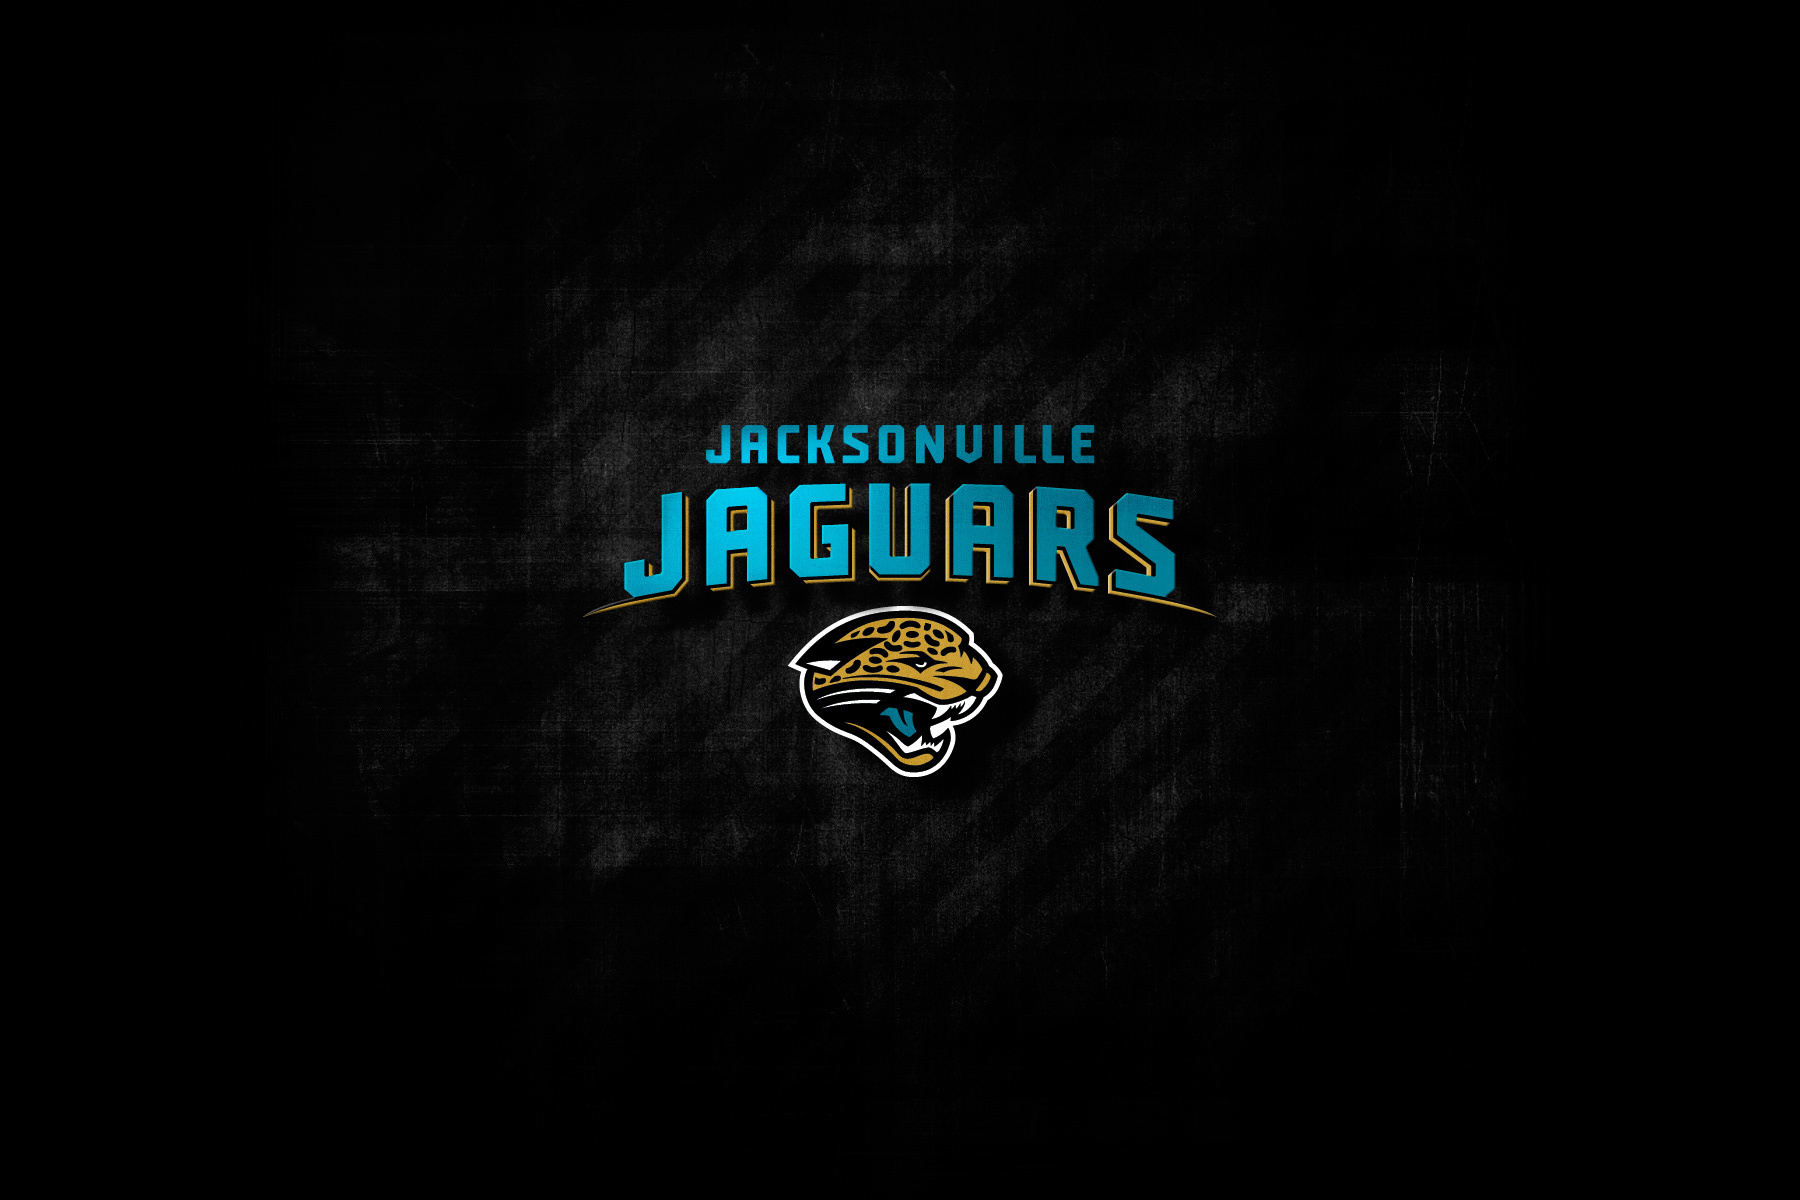 Jacksonville Jaguars Images Jacksonville Jaguars HD Wallpaper And  Background Photos